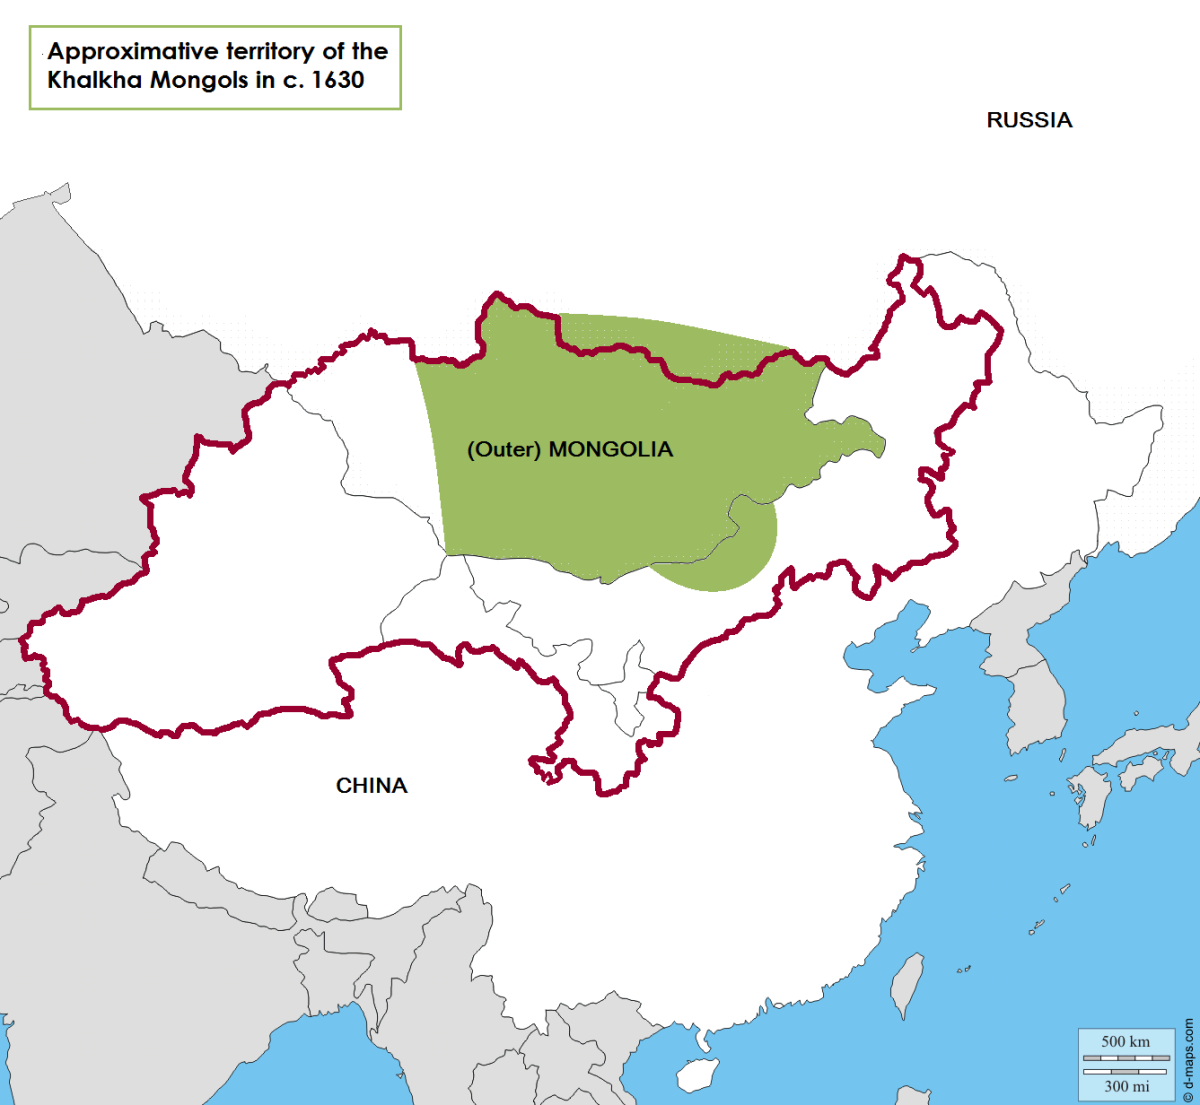 Approximative territory inhabited by Khalkha mongols in c. 1630